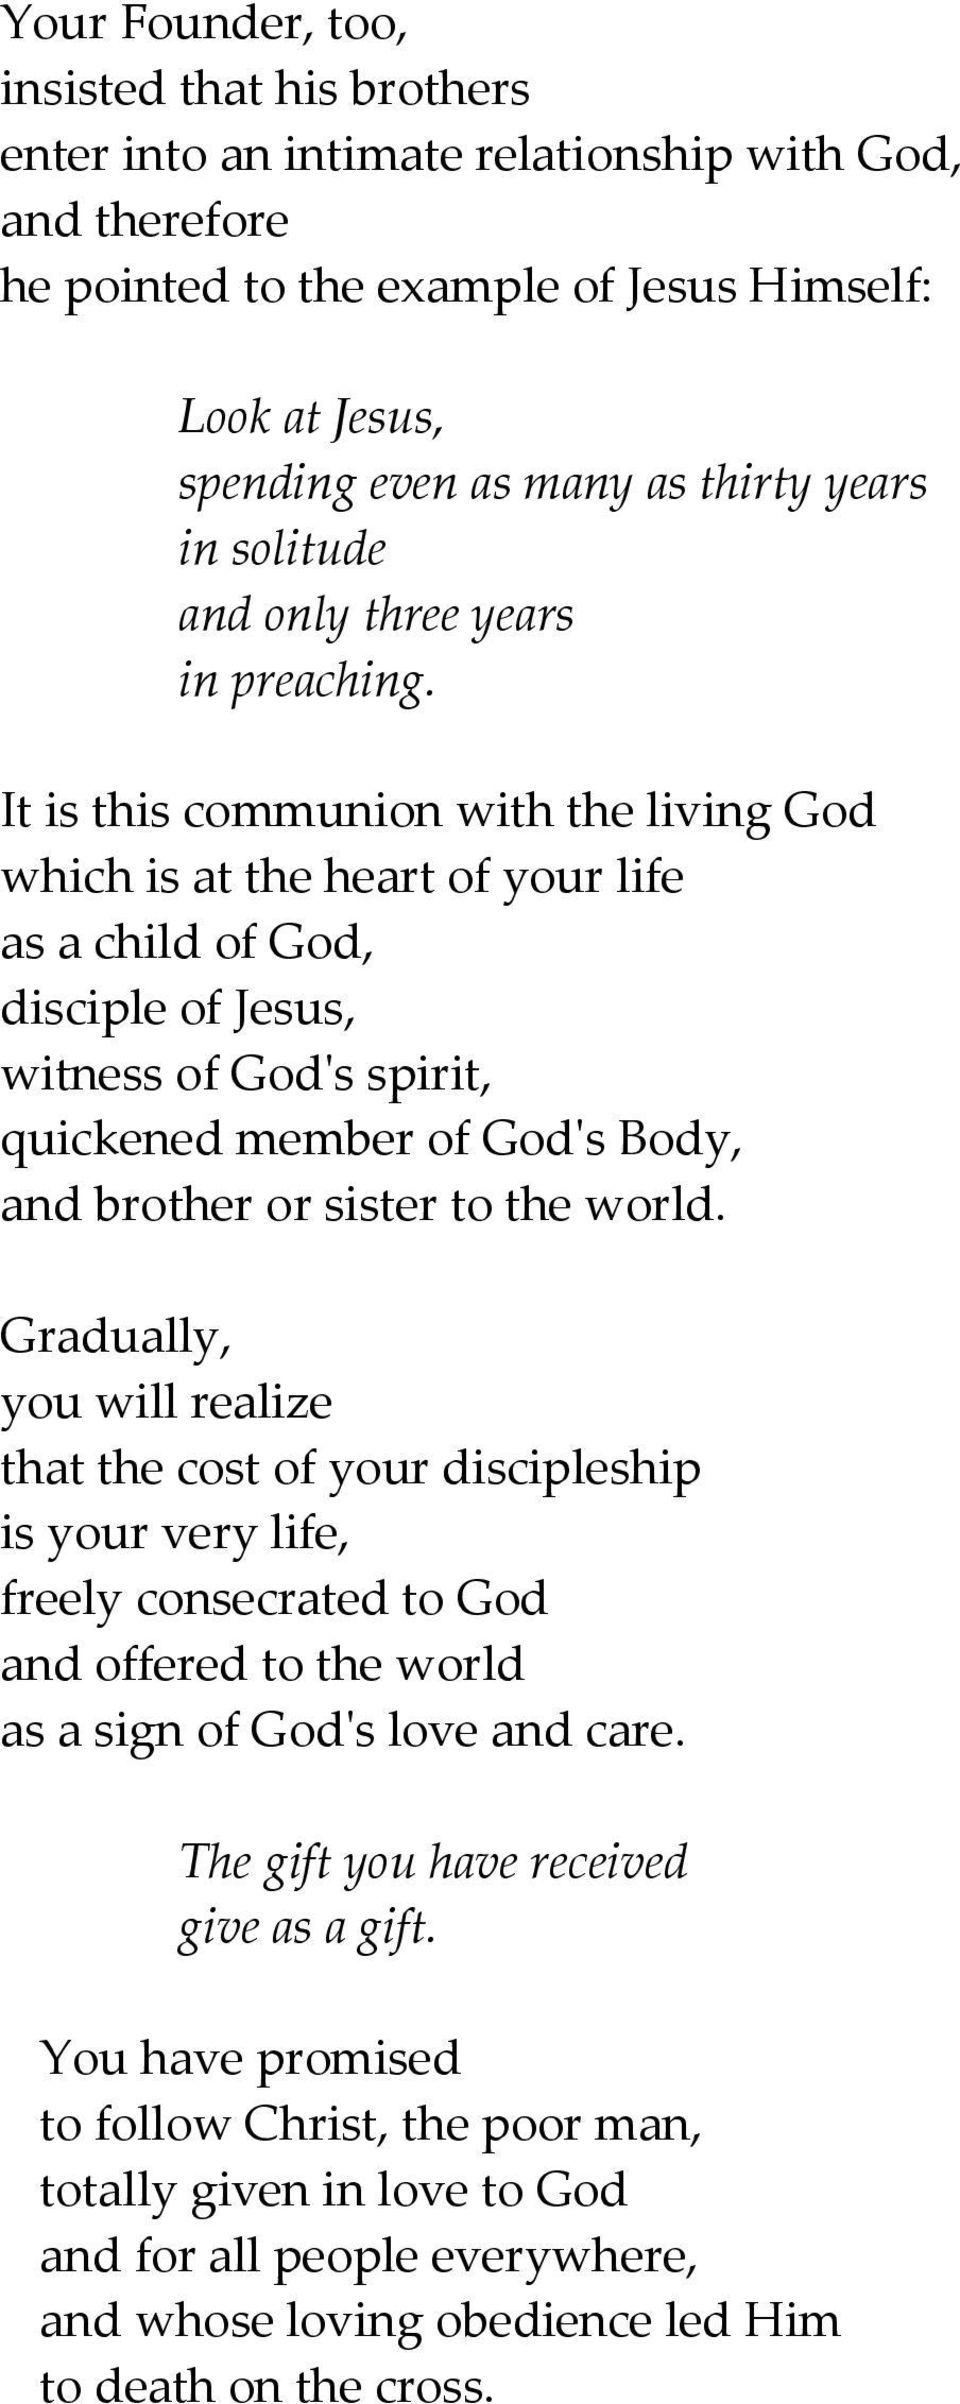 It is this communion with the living God which is at the heart of your life as a child of God, disciple of Jesus, witness of God's spirit, quickened member of God's Body, and brother or sister to the